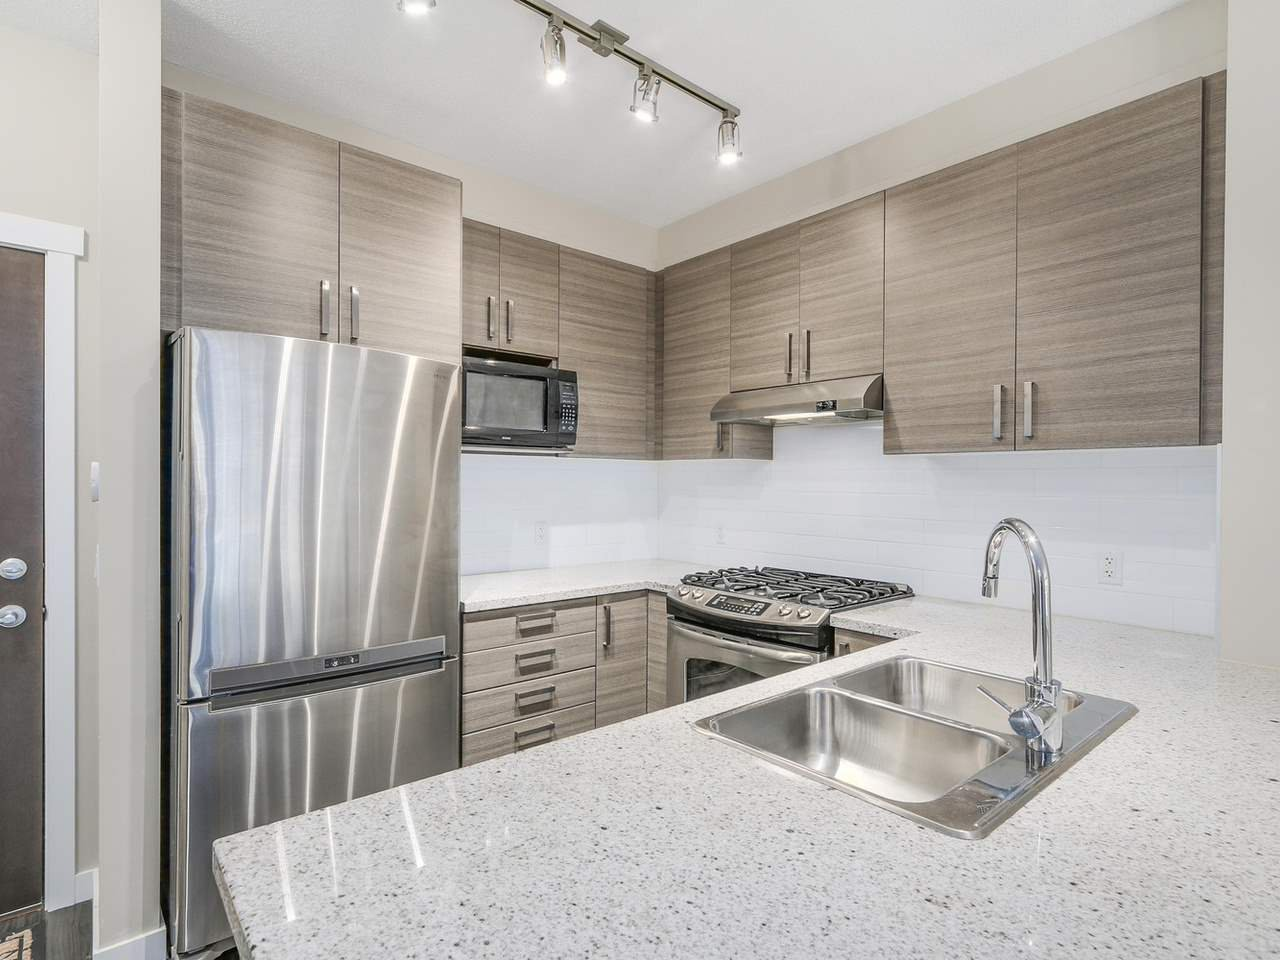 """Photo 5: Photos: 108 1150 KENSAL Place in Coquitlam: New Horizons Condo for sale in """"Windsor Gate"""" : MLS®# R2102595"""